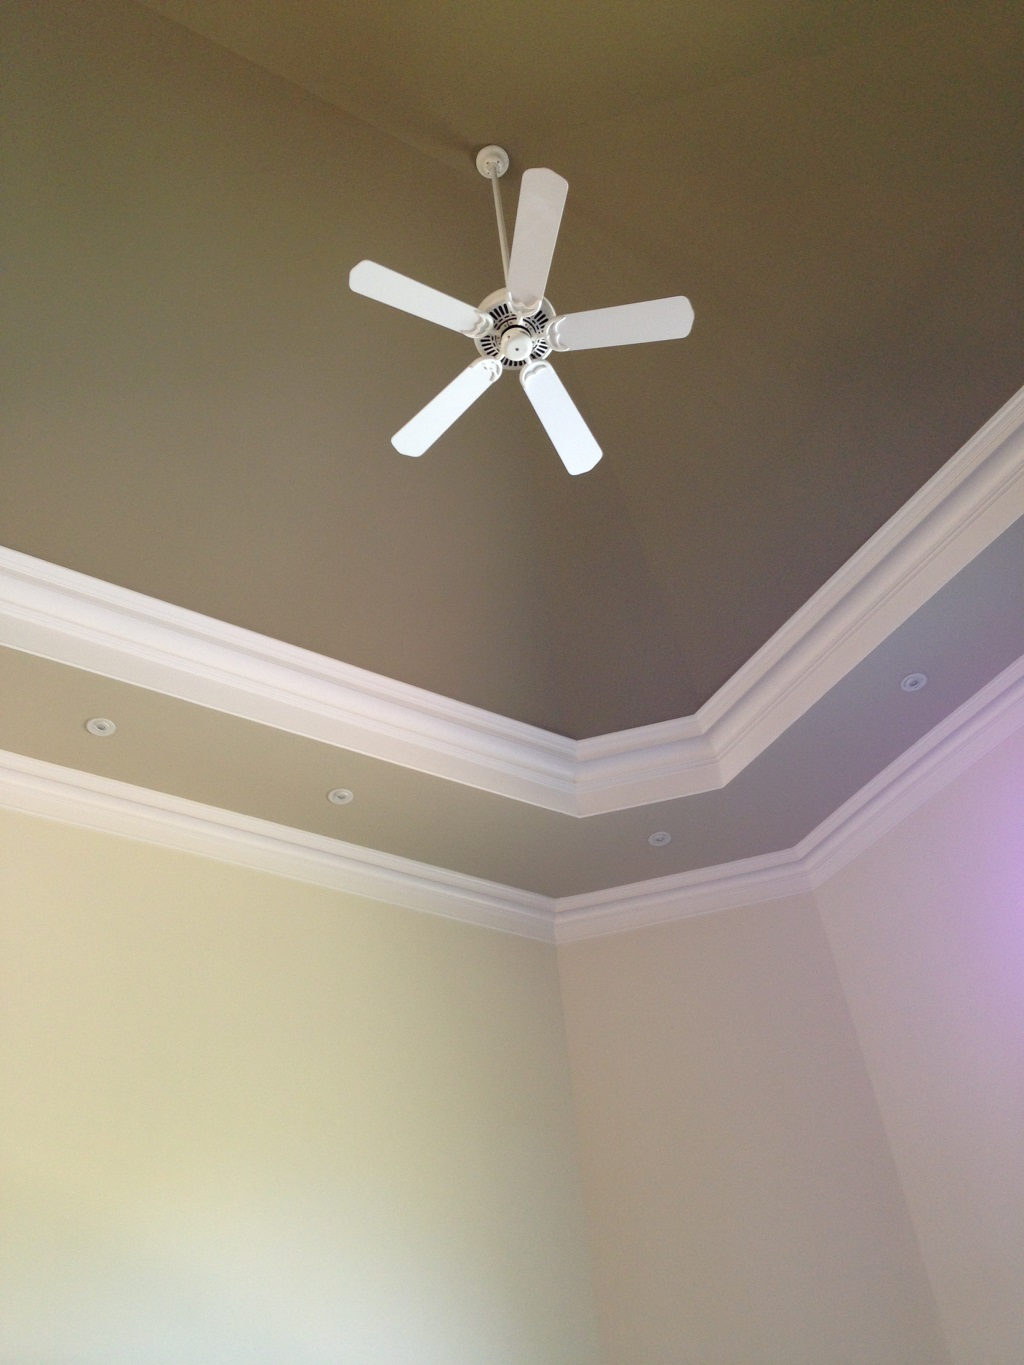 Ceiling Fan Installation : Ceiling fan installs central nj westfield union clark